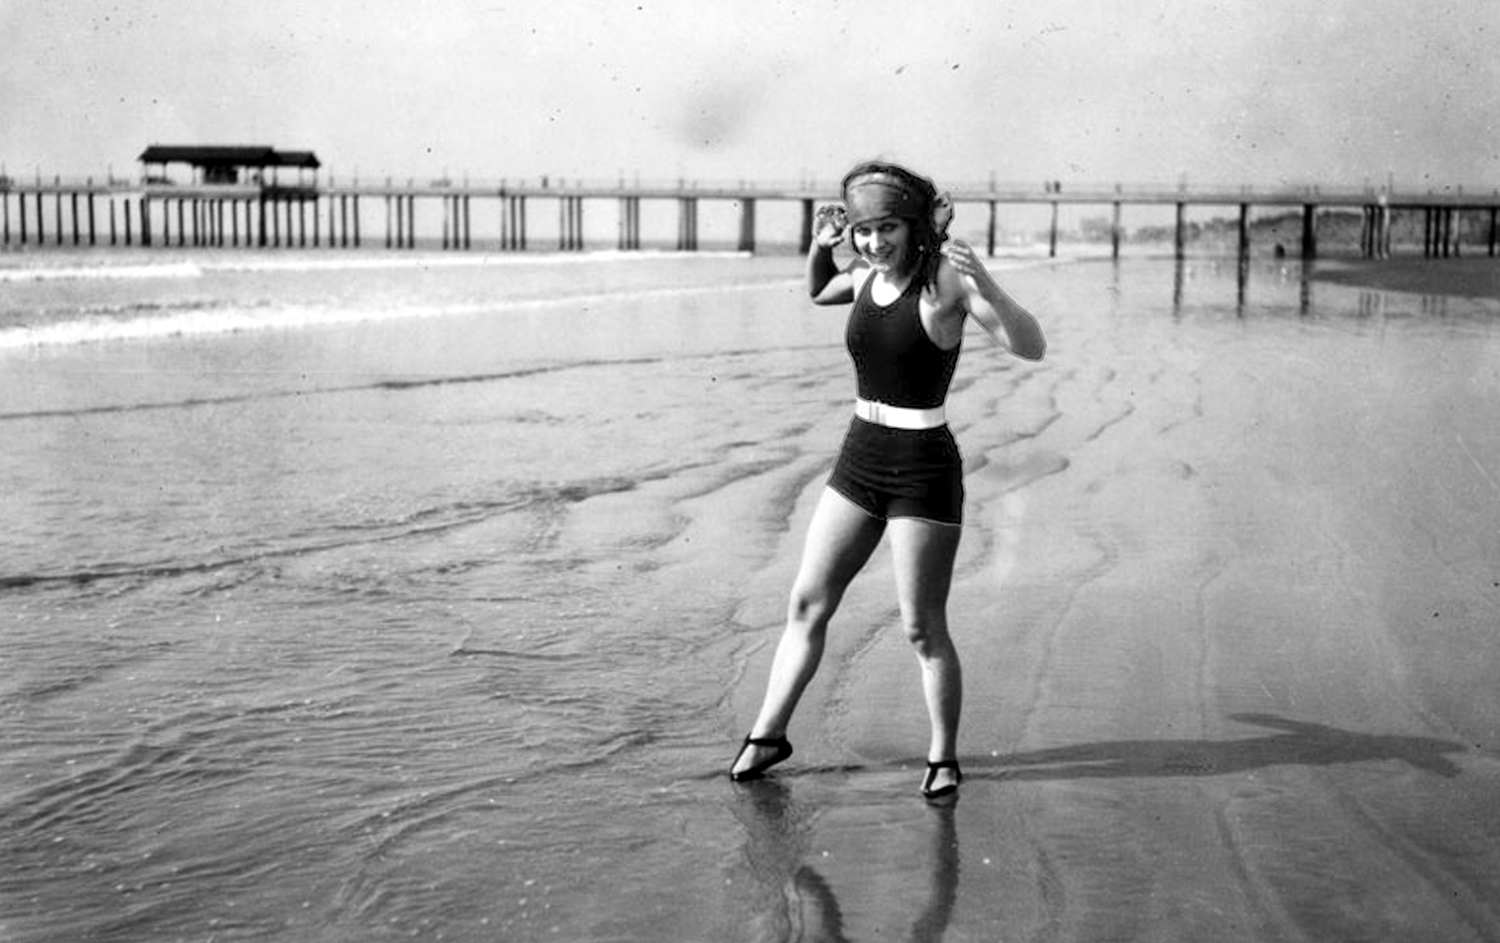 Summer travel to Los Angeles benefited from a new belief in the revitalizing power of summer sunlight. Pale complexions were on the way out; tans were in, and swimsuits in the 1920s began to show more and more skin. Photograph courtesy of Security Pacific National Bank Collection, Los Angeles Public Library